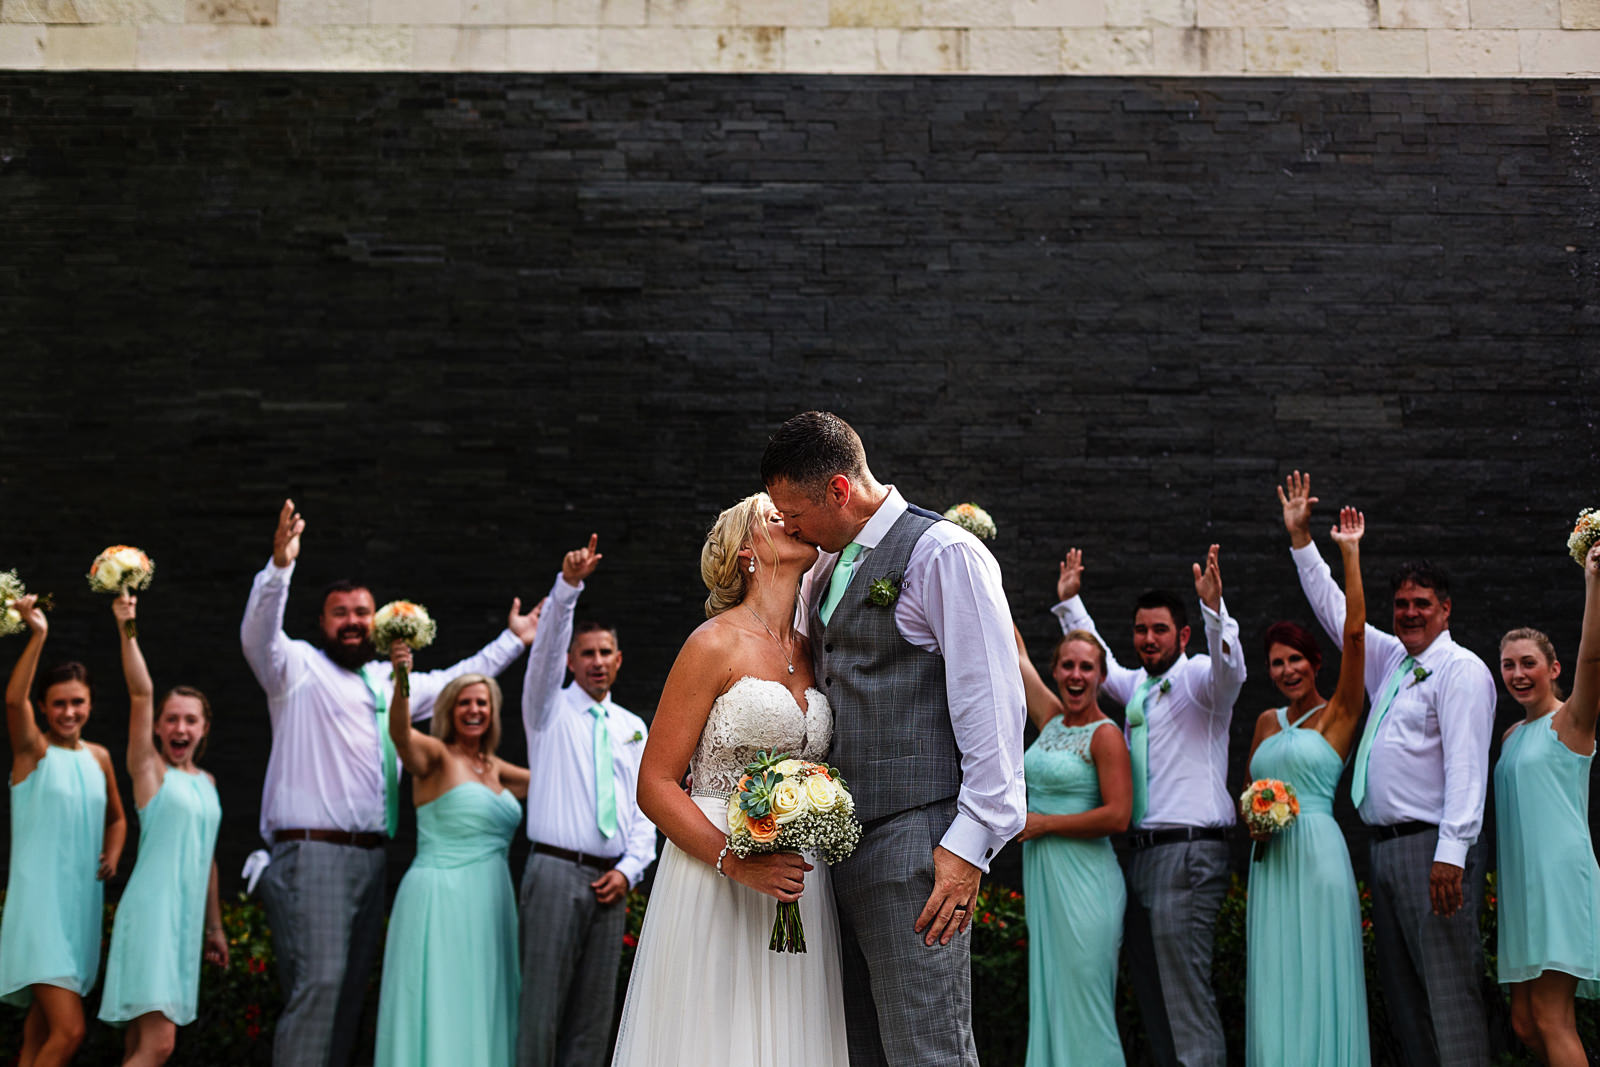 Groom and bride kiss while the groomsmen and bridesmaids cheer for them in the background